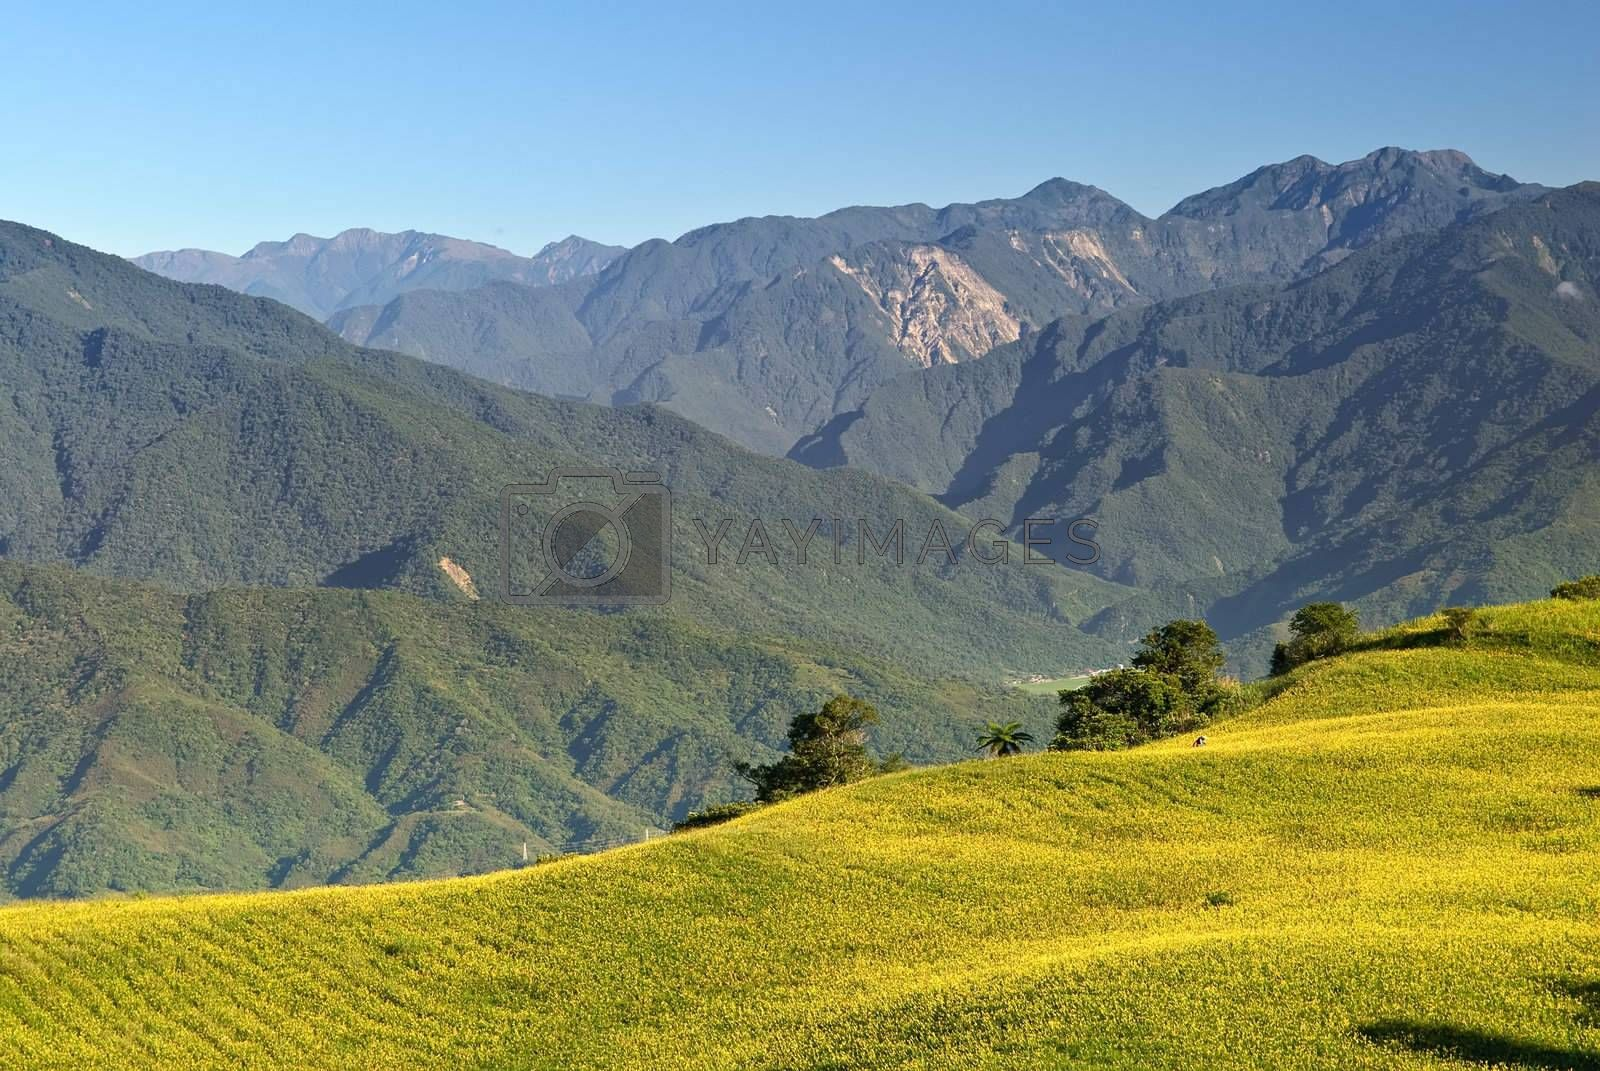 Mountain scenery with golden hill under blue sky.